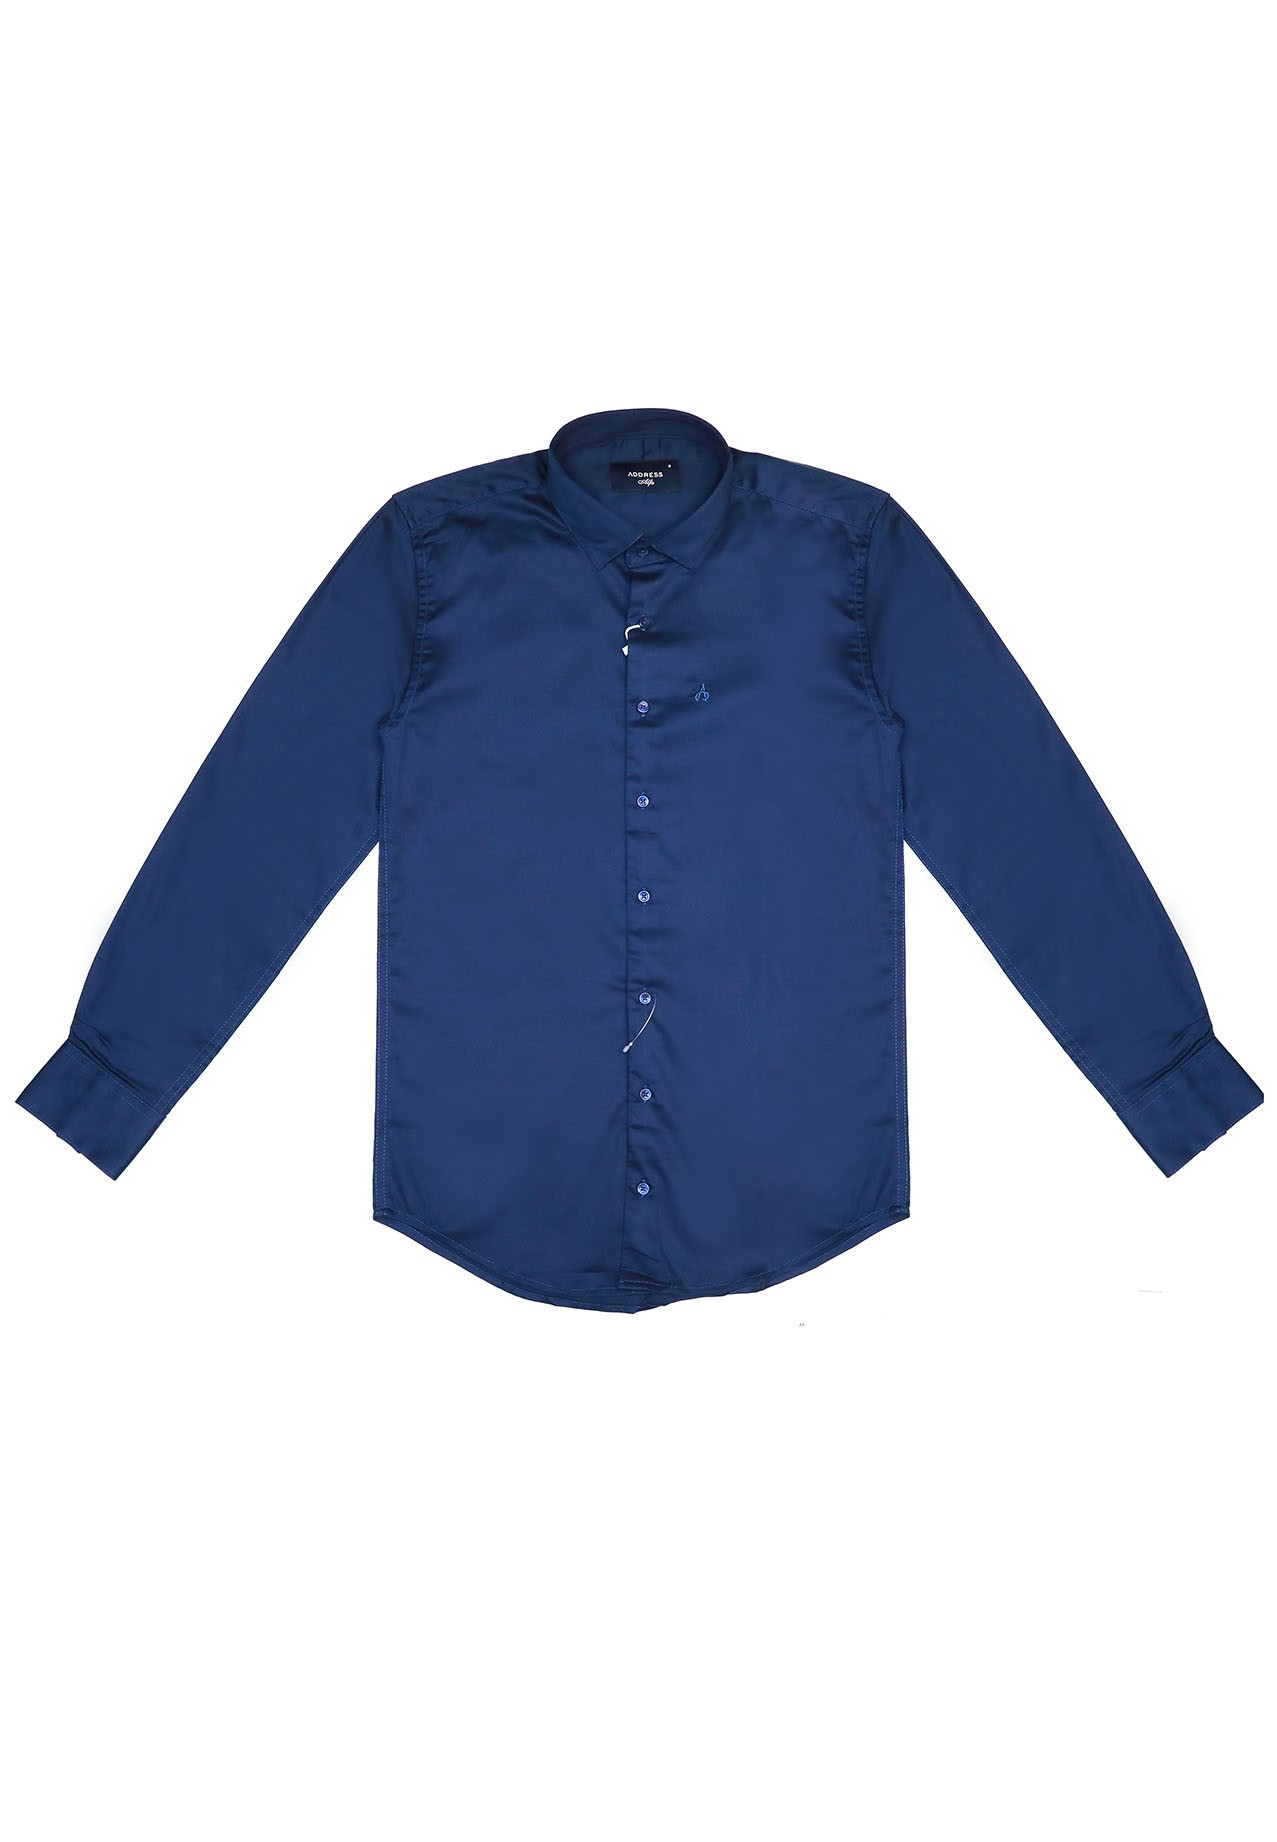 Address Formals Shirt Blue, Medium